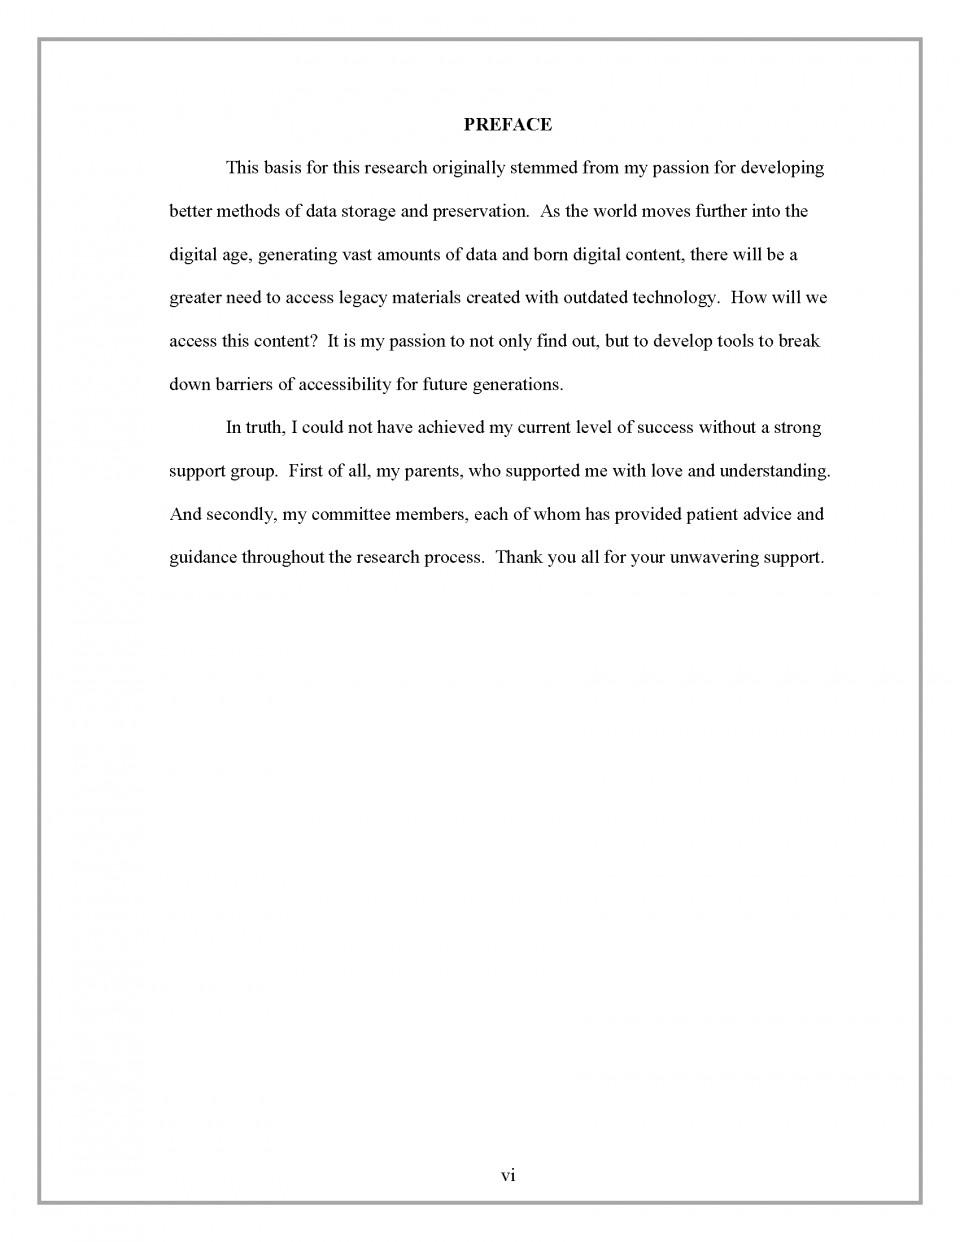 018 Thesis For Research Paper Preface Border Wonderful A Statement On The Holocaust Free Generator Example Pdf 960